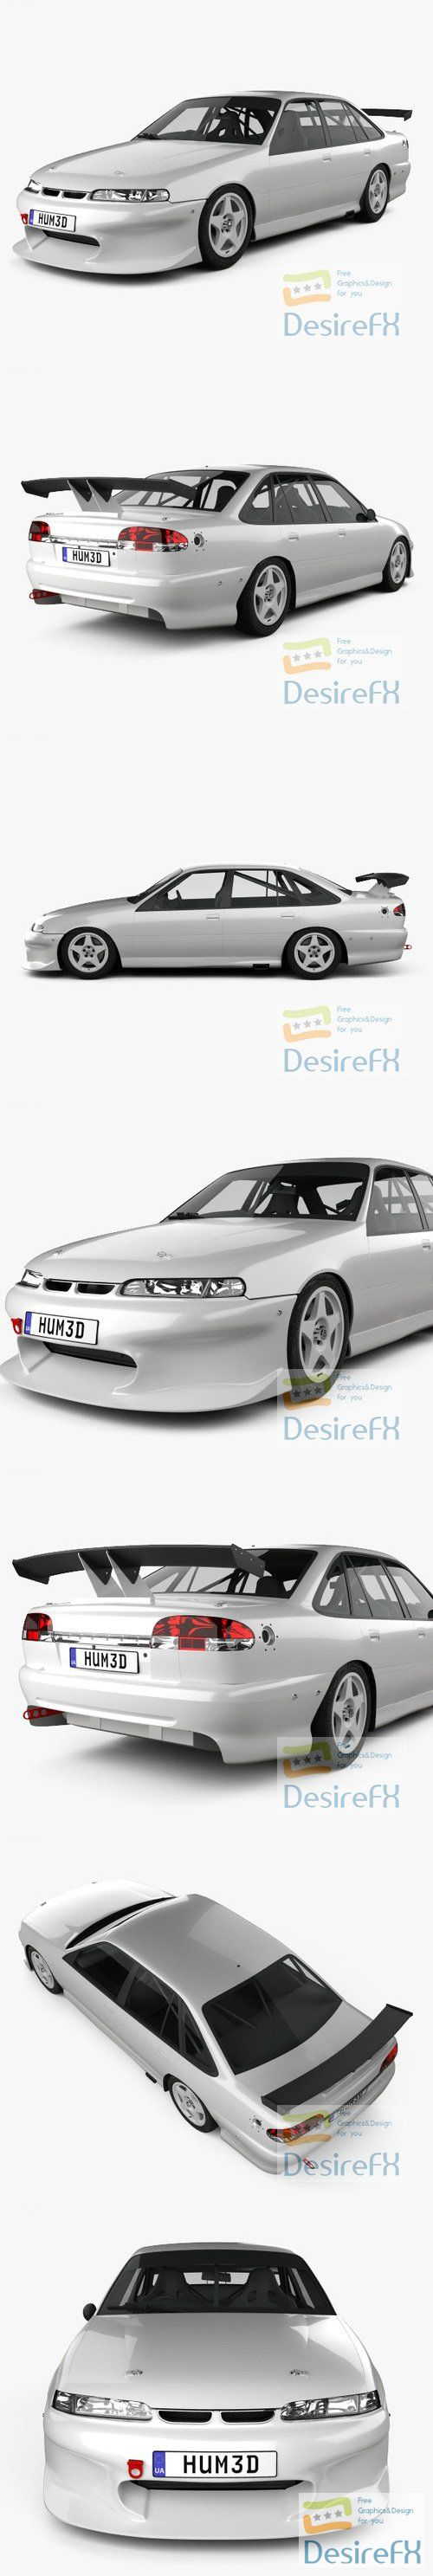 Holden Commodore Race Car 1993 3D Model